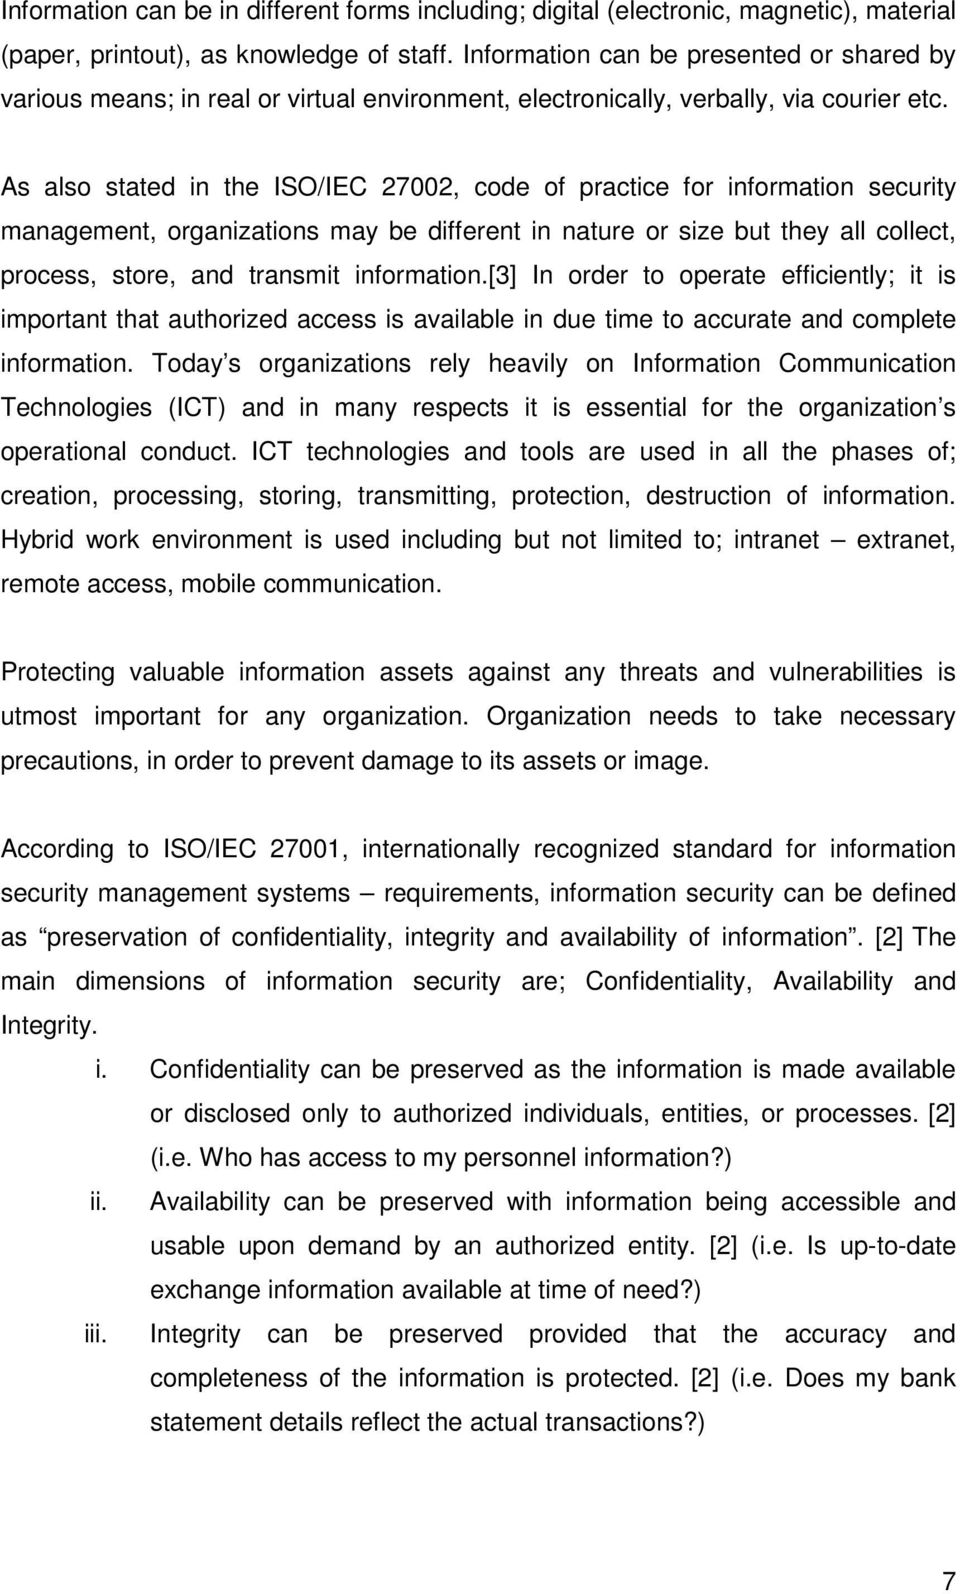 As also stated in the ISO/IEC 27002, code of practice for information security management, organizations may be different in nature or size but they all collect, process, store, and transmit